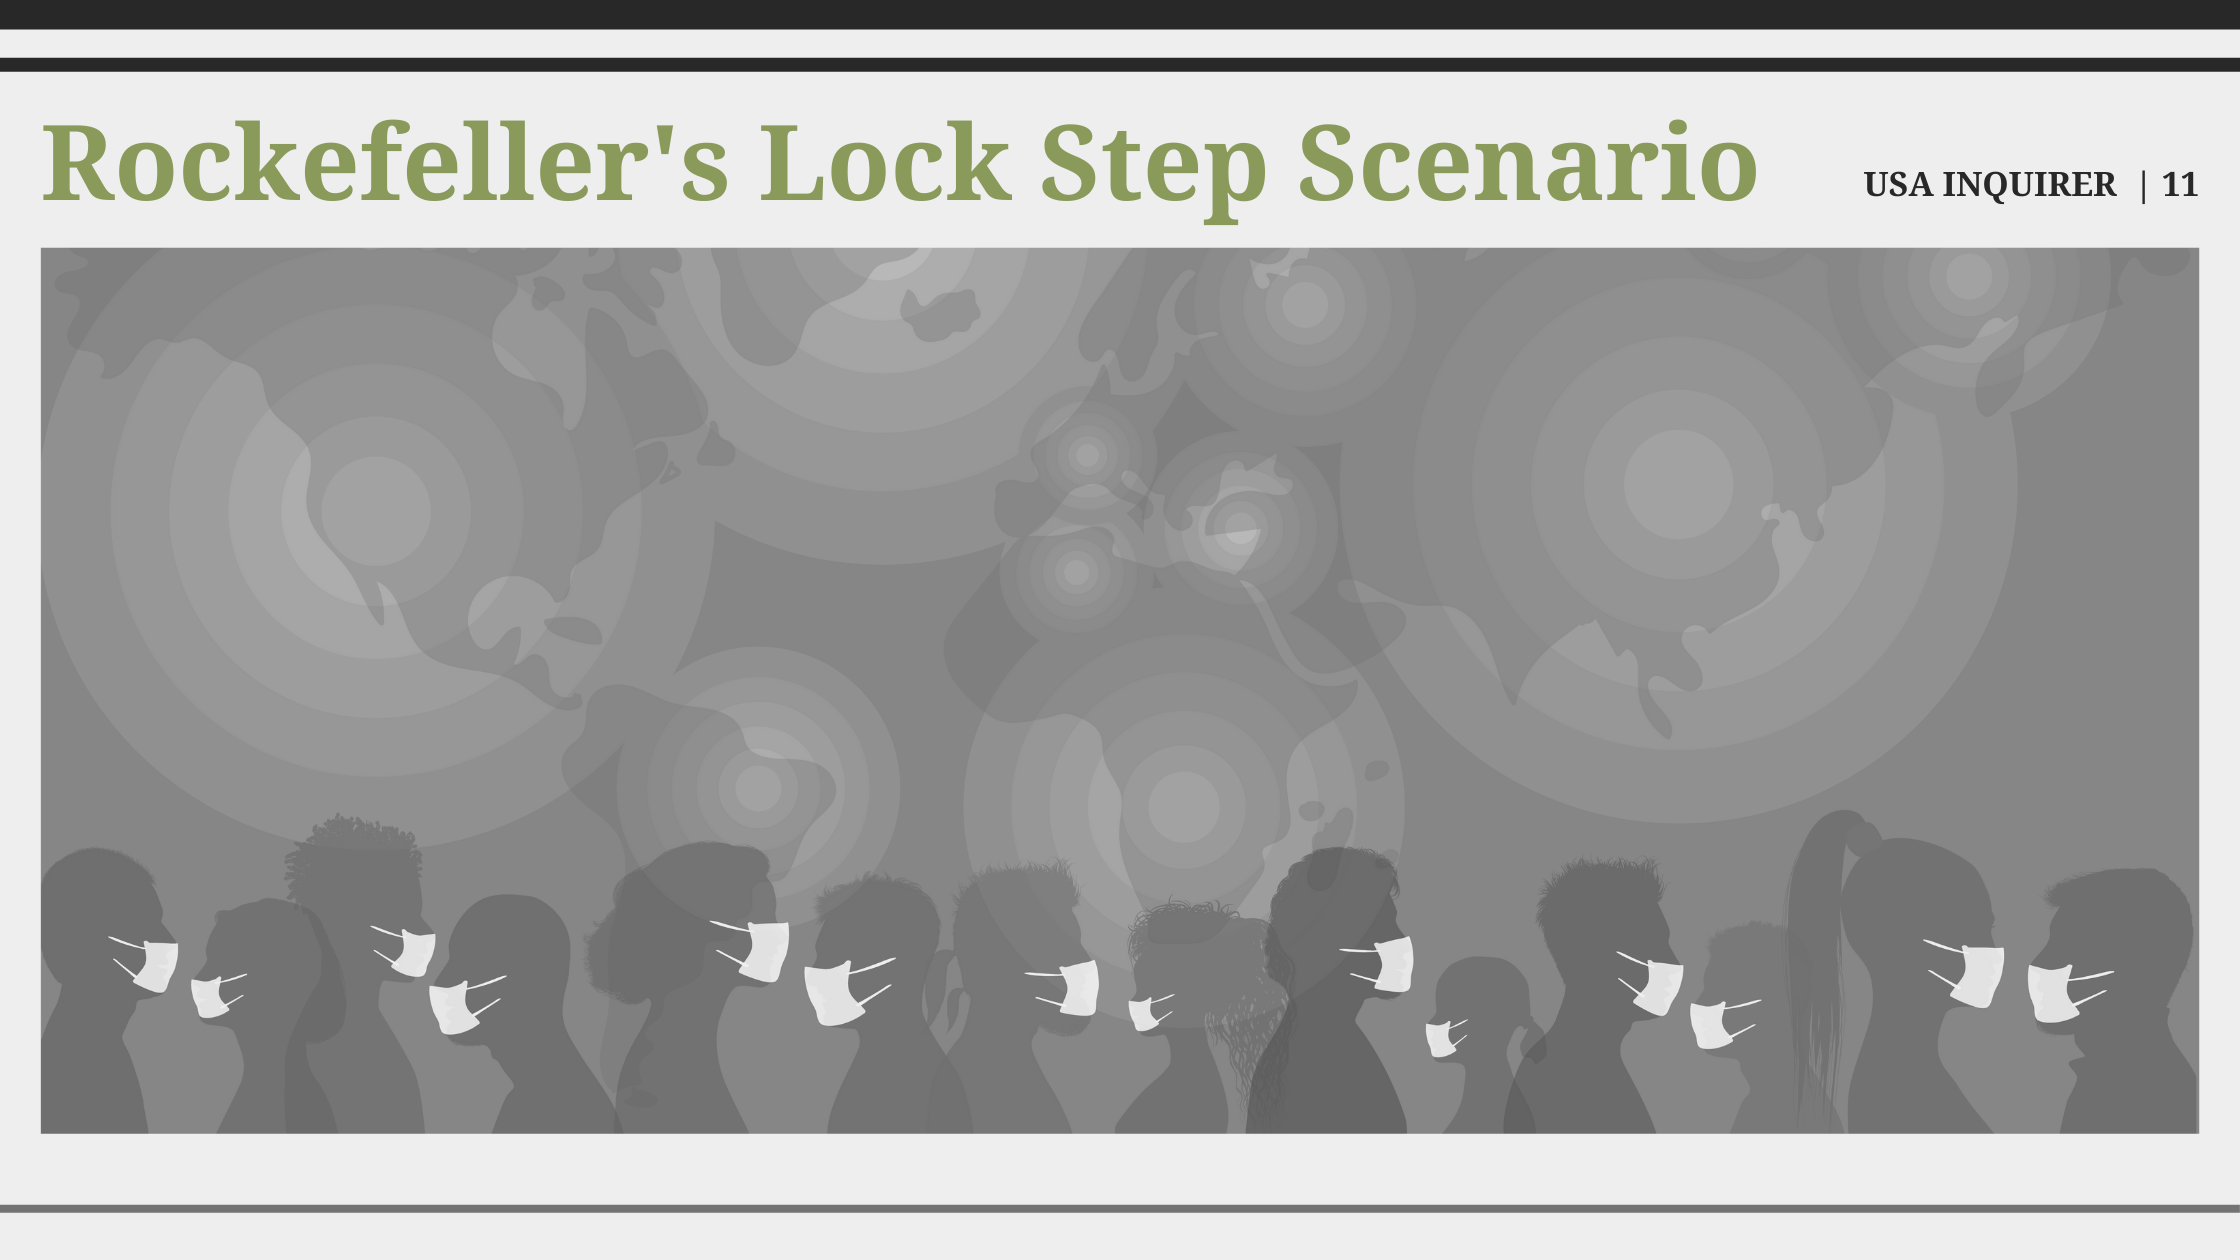 Rockefeller's 2010 'Lock Step' Strategizes Government Response to Pandemic